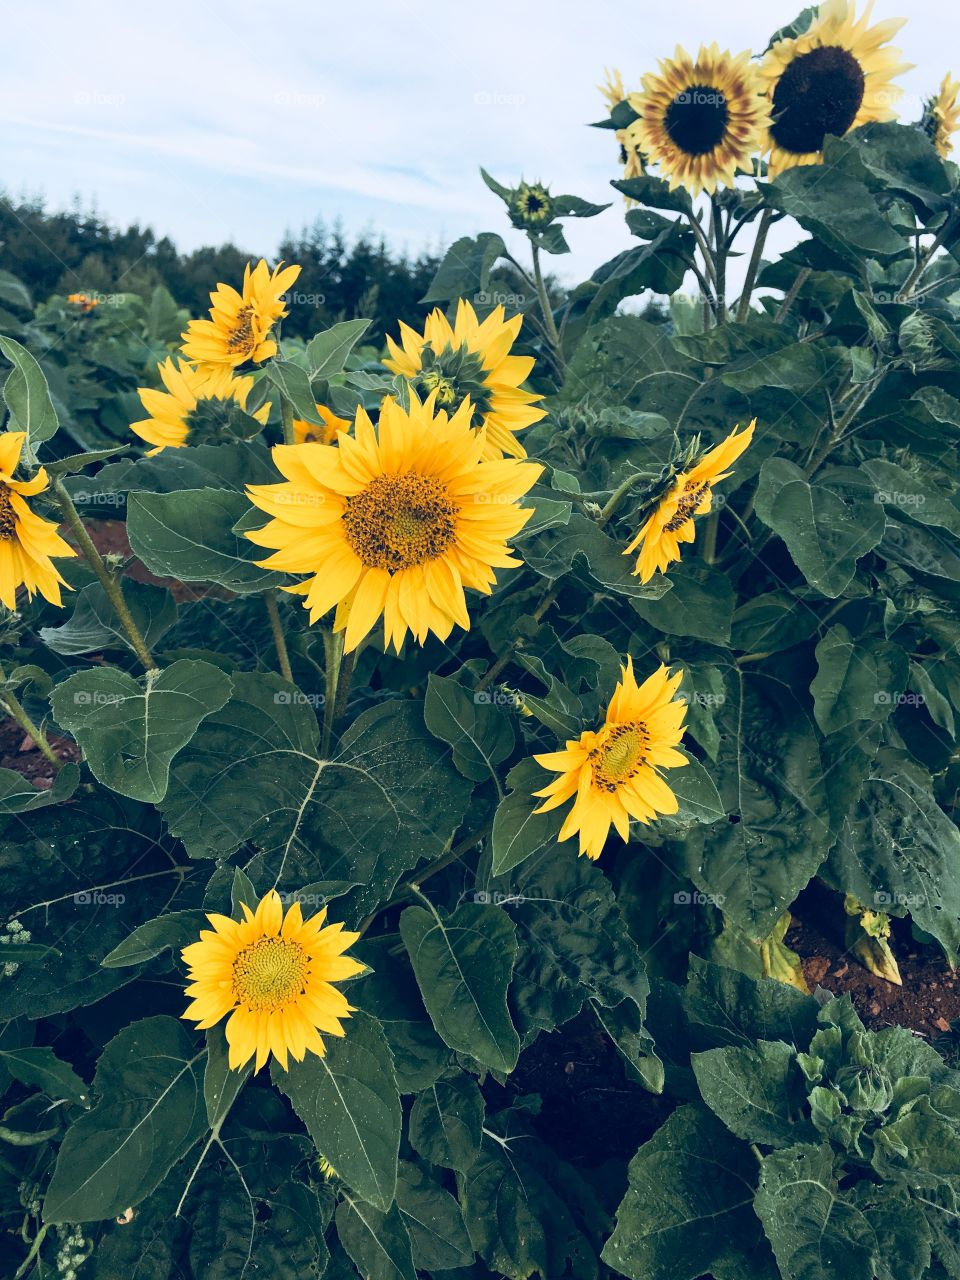 Bright, yellow Sunflowers surrounded by green leaves growing in the garden.